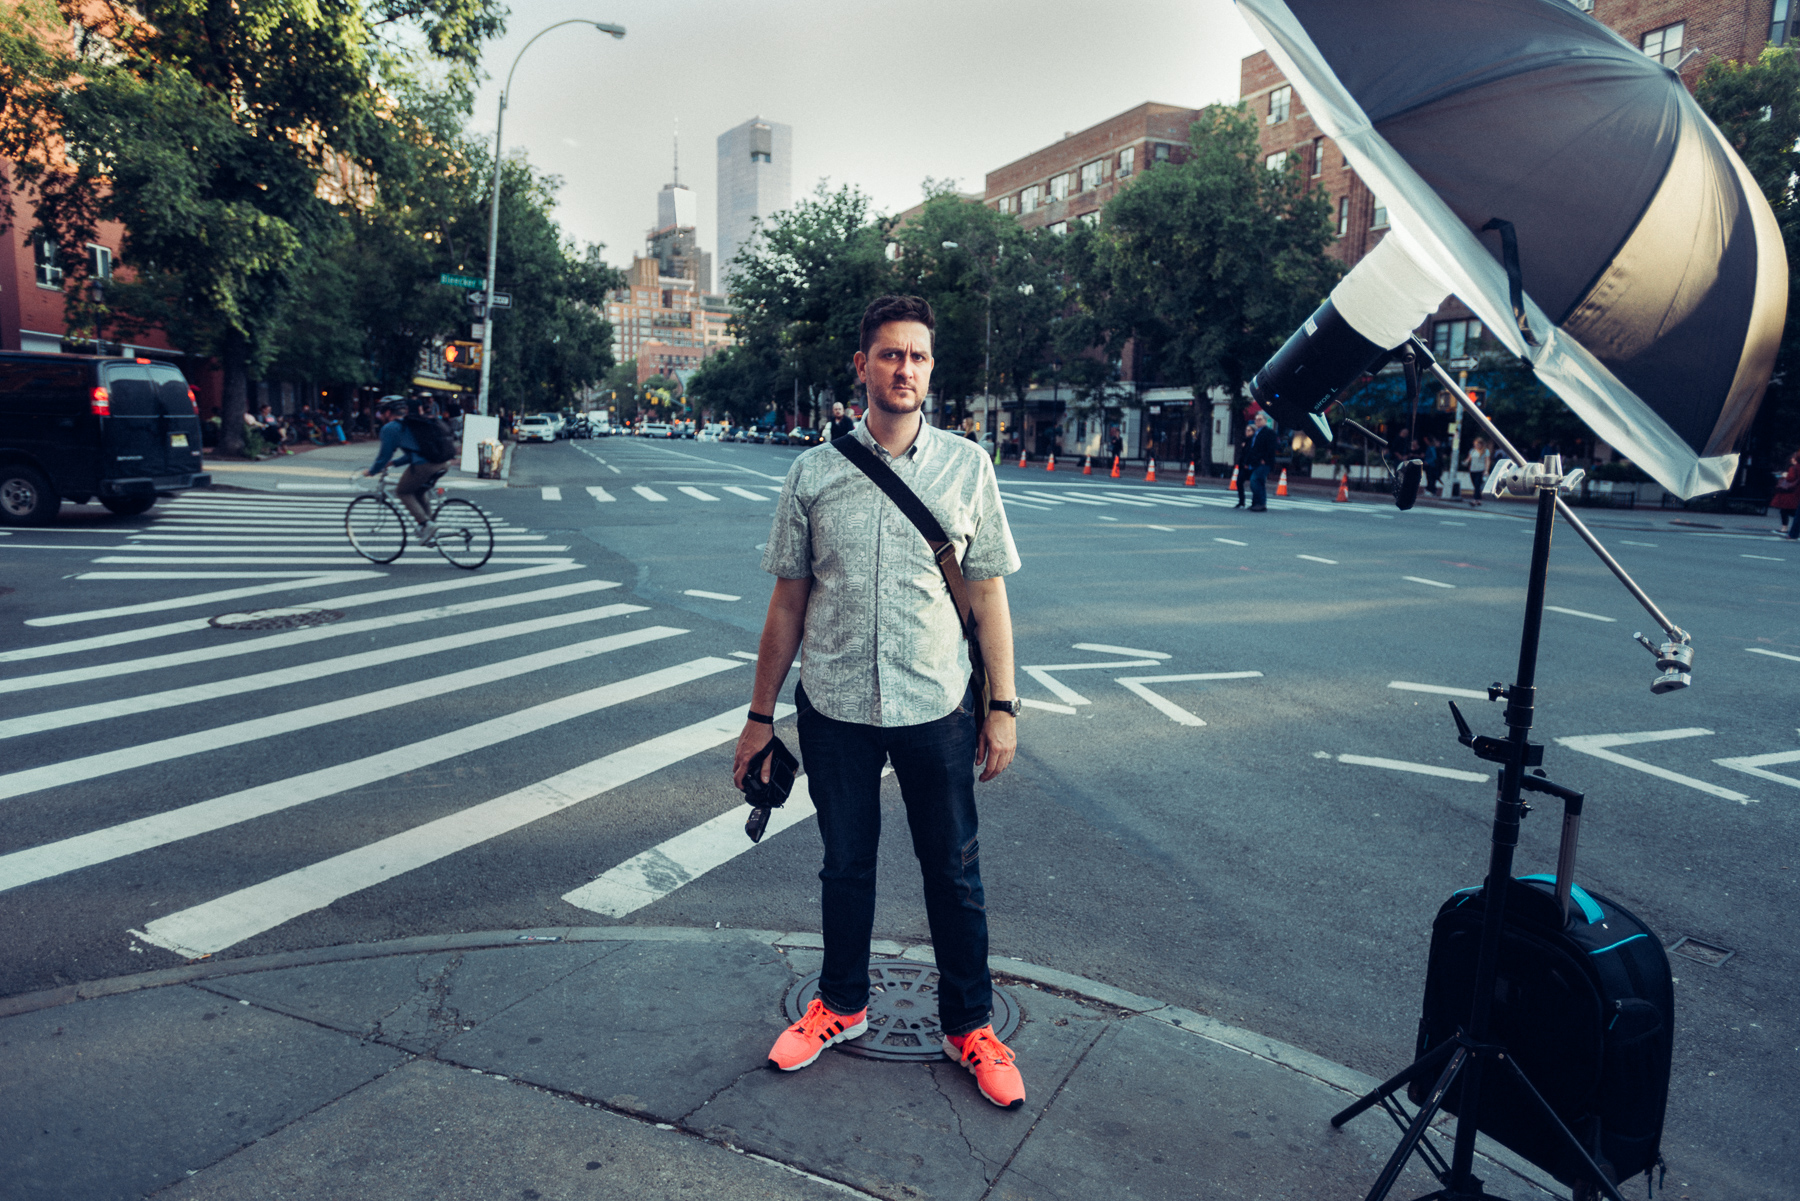 Jason standing in for a lighting test on 6th Ave. I wanted to keep the setup lightweight and portable, so we shot with a single Broncolr Siros L light with a Photek softlighter, boomed out on an arm to get the stand out of the way for wider shots. The power of the strobe was kept pretty low to assist and accentuate the natural light of the scene, not overpower it. The Siros L is battery powered, so that meant no power cables, external battery packs, or generators, but the light is still powerful for nearly any outdoor situation, and also has a couple of nifty features like High Speed Sync to allow for flash synchronization at any shutter speed - useful for shooting at wide apertures in bright light where 1/250s is not possible.